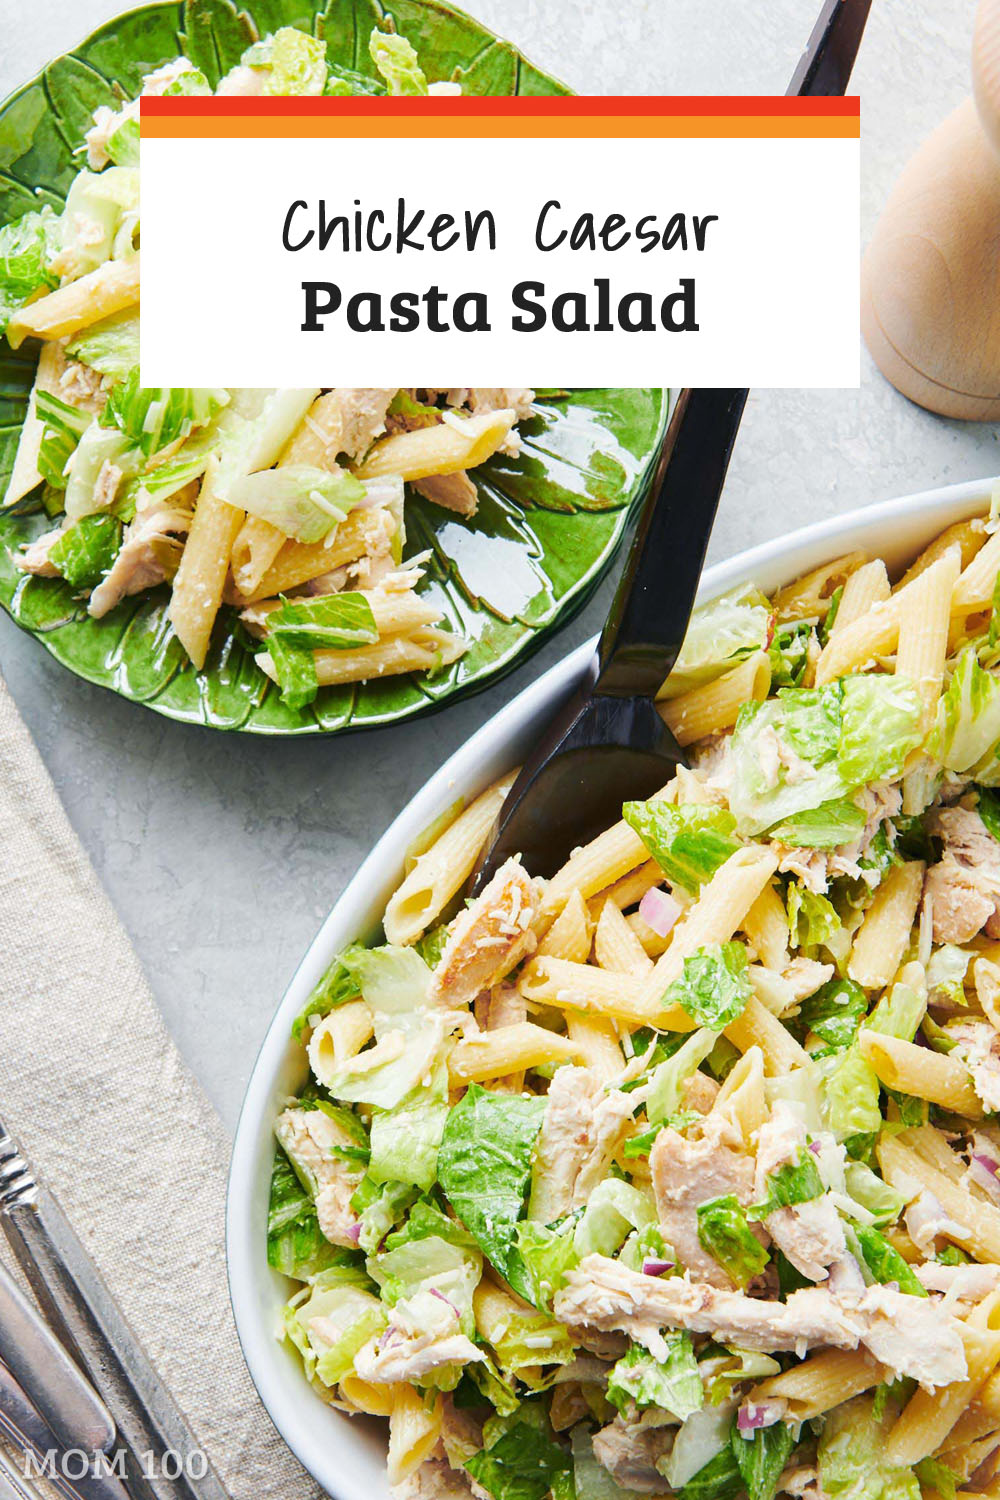 If you like Caesar Salad, and you also like pasta salad this is your lucky day. This Chicken Caesar Pasta Salad is the best of both worlds. #pastasalad #summer #caesardressing #caesarsalad